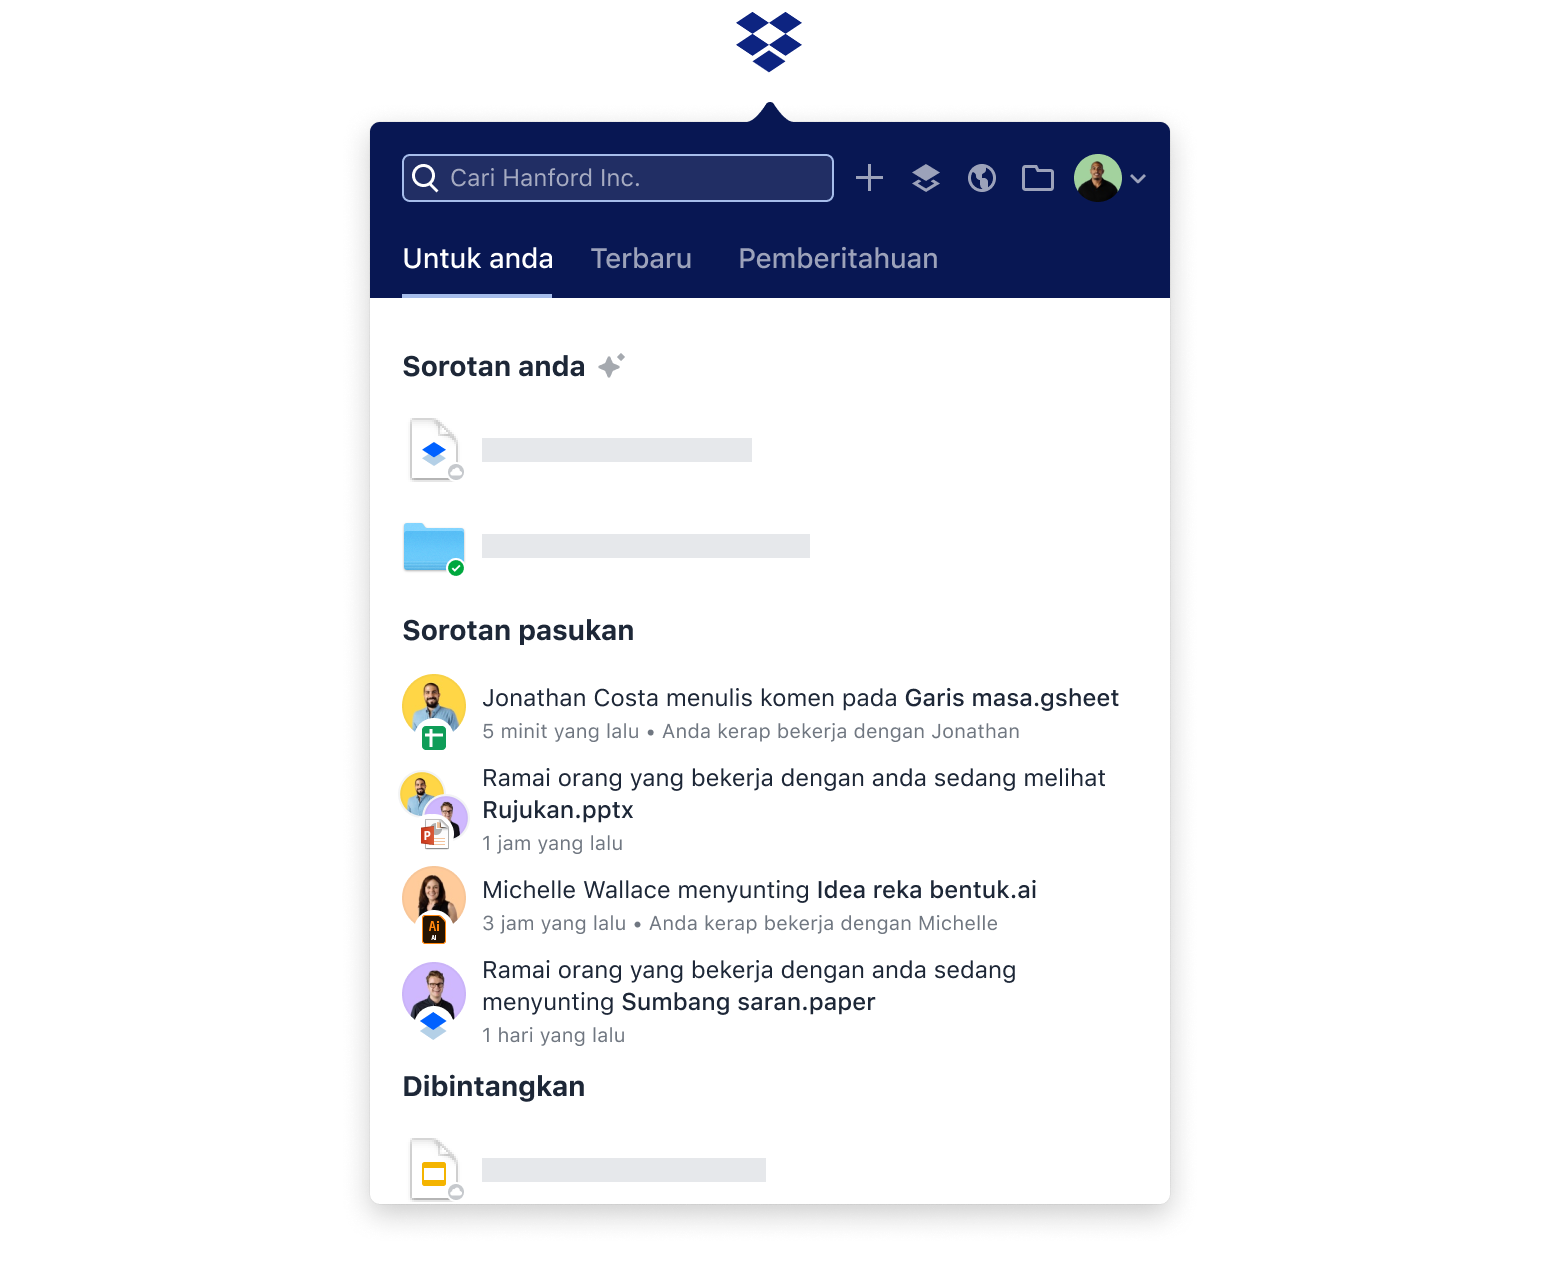 Overview of recent personal and team activity in the Dropbox 'For you' tab.